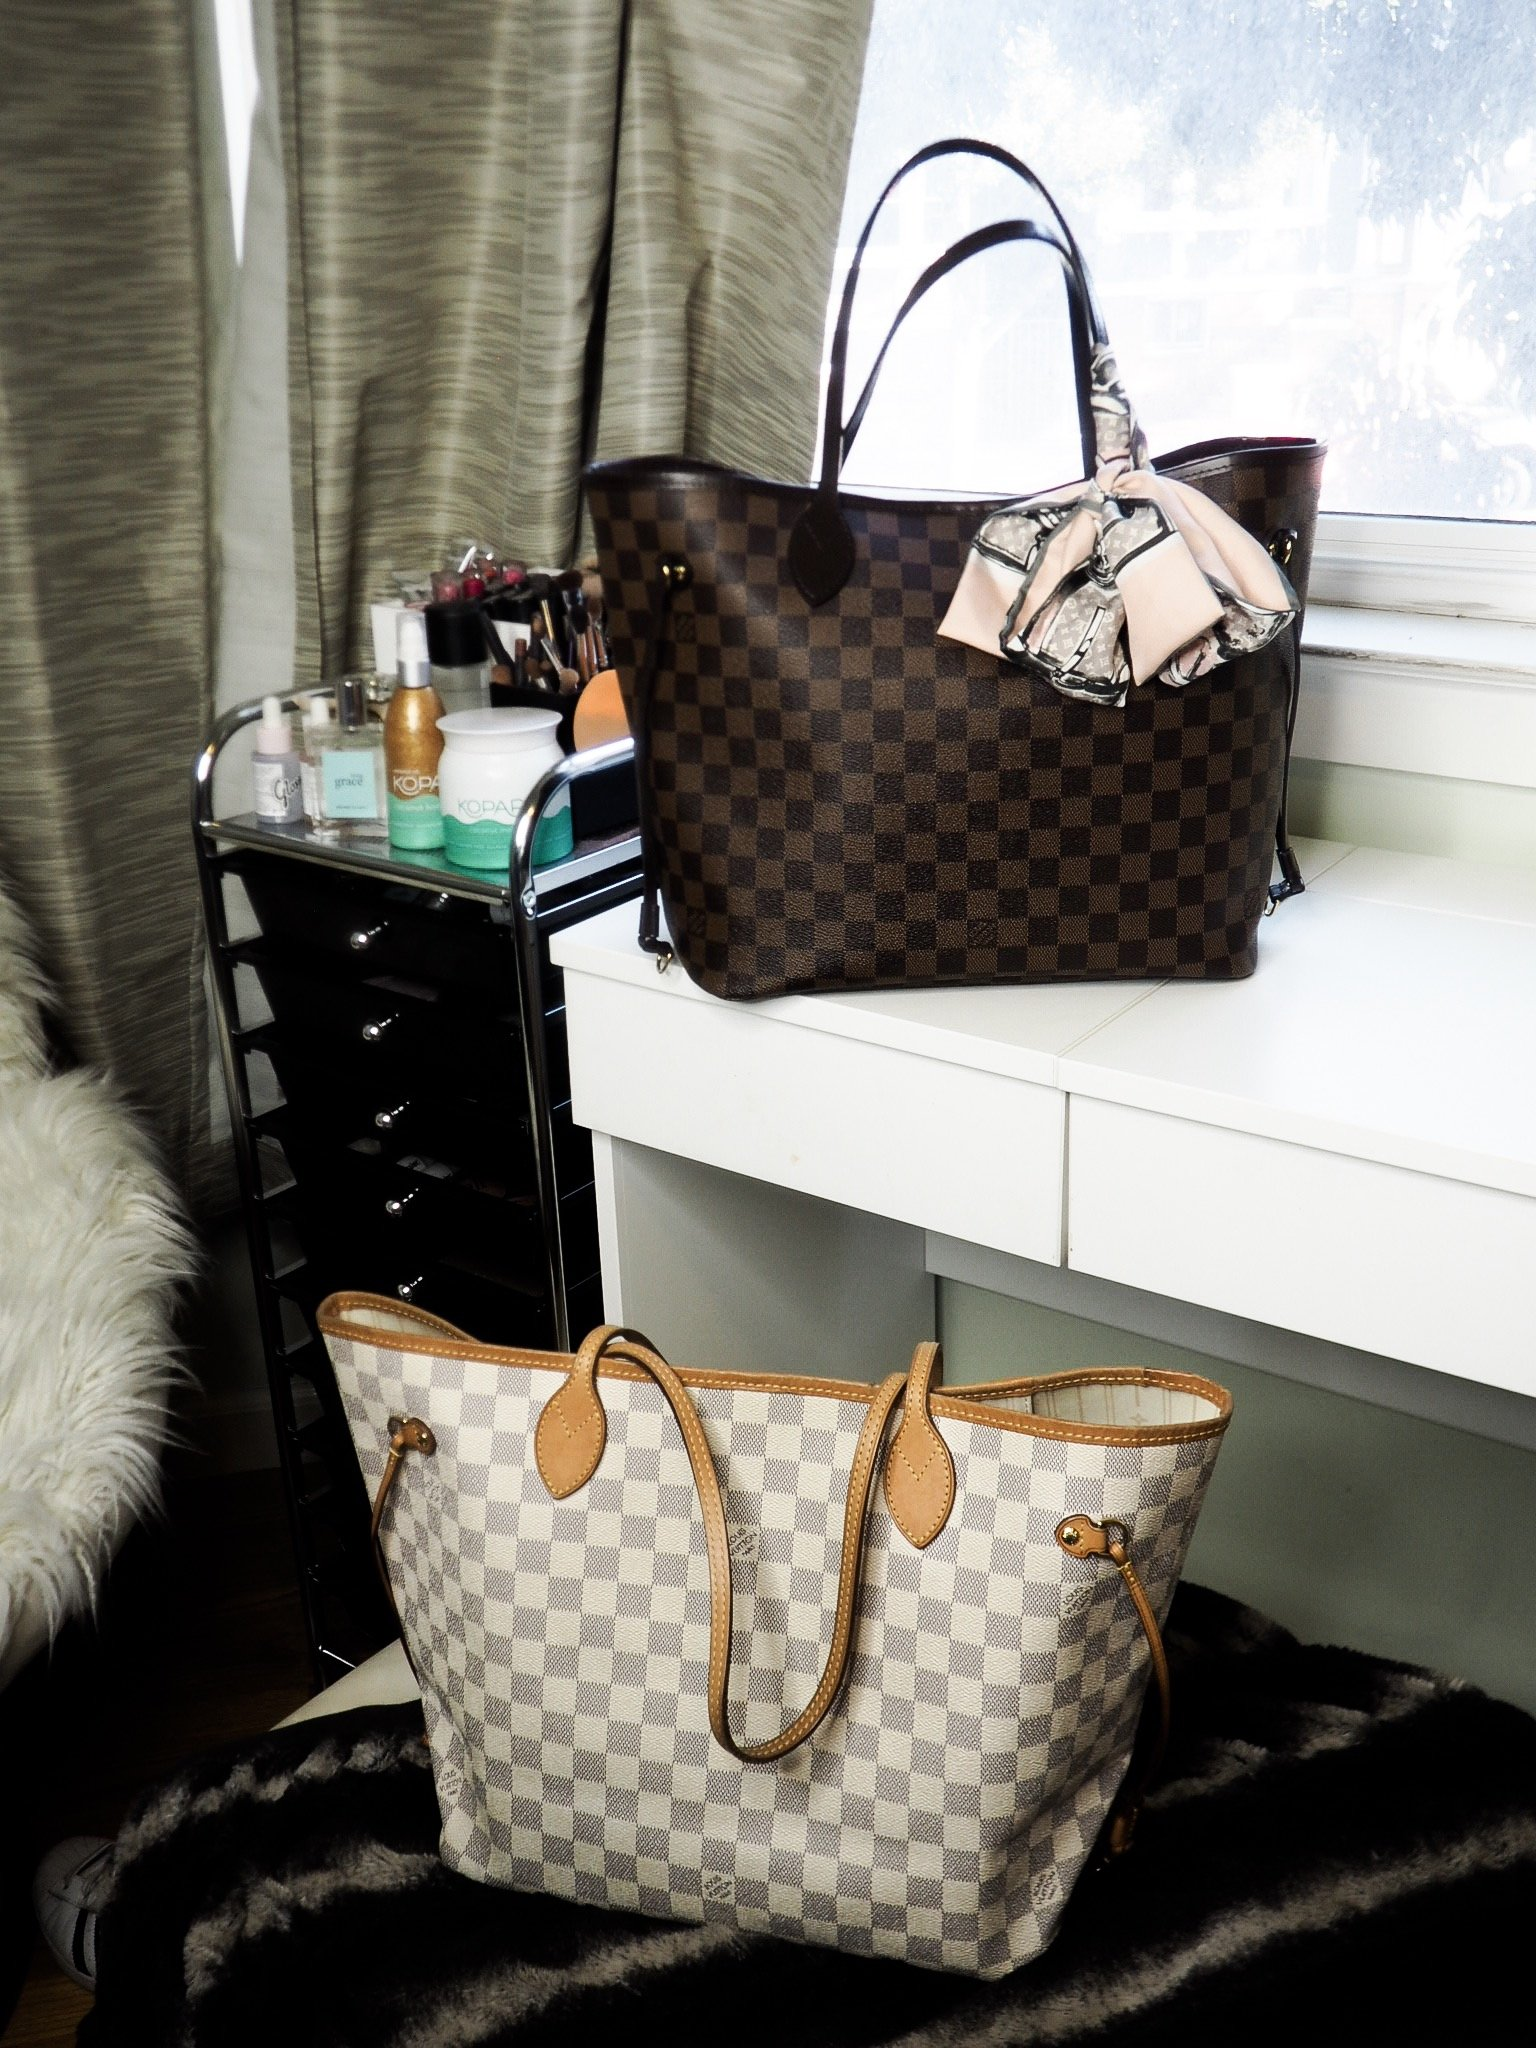 d2c8590d5da6 The Best Handbags to Take to Work